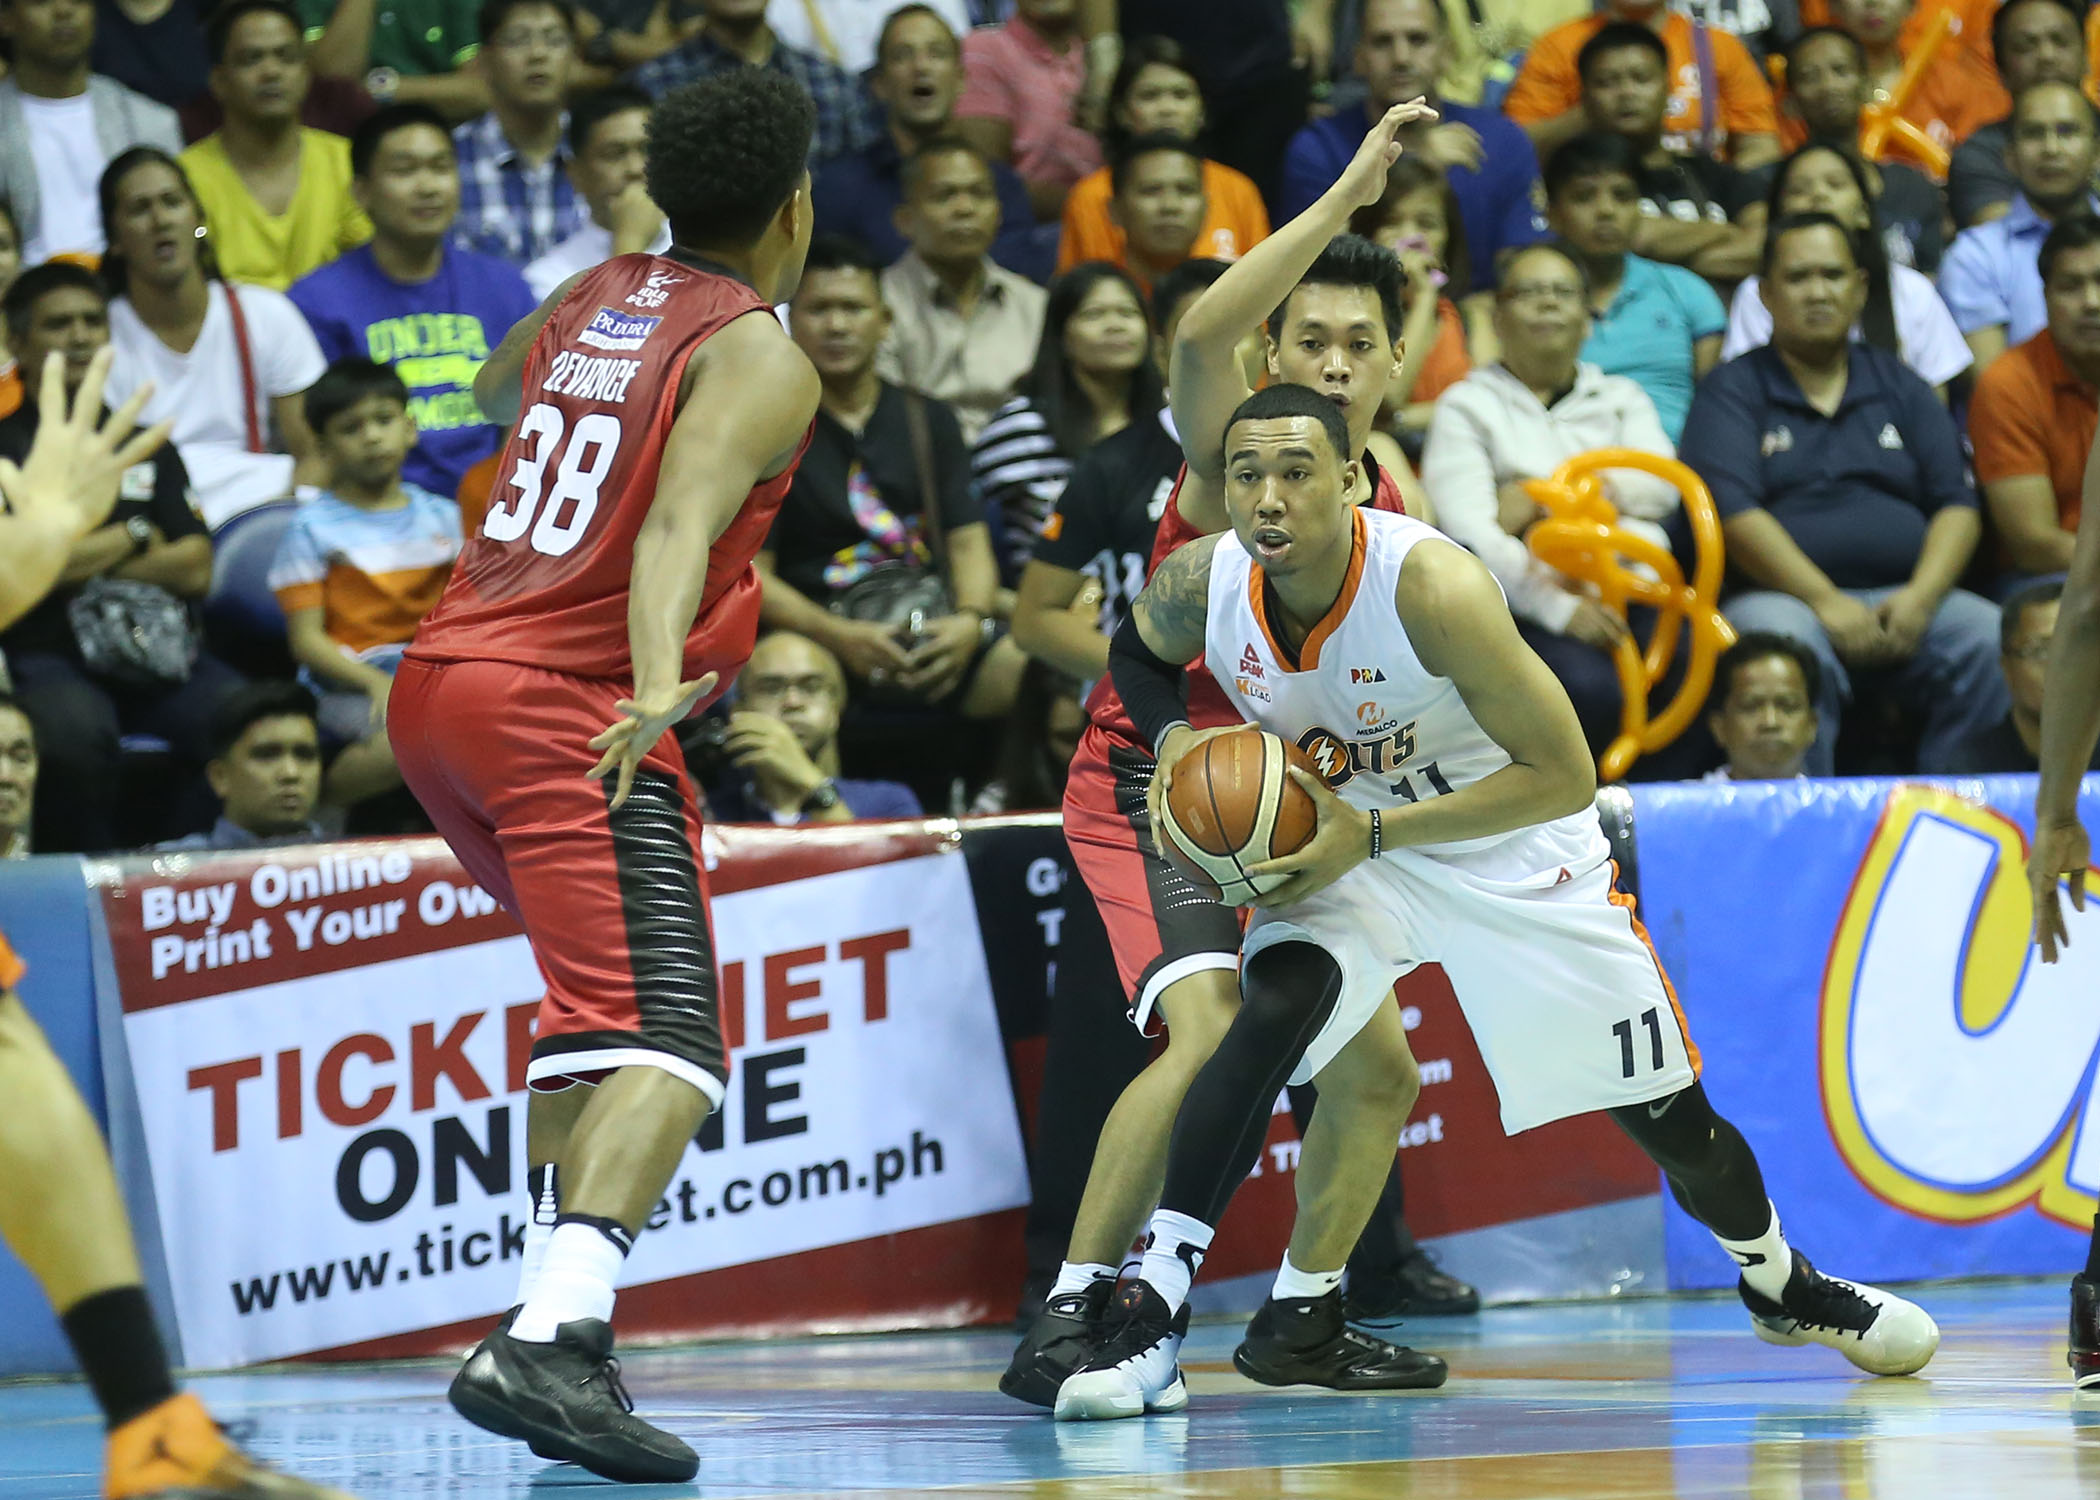 pba-meralco-vs-ginebra-october-7-2016-kc-2